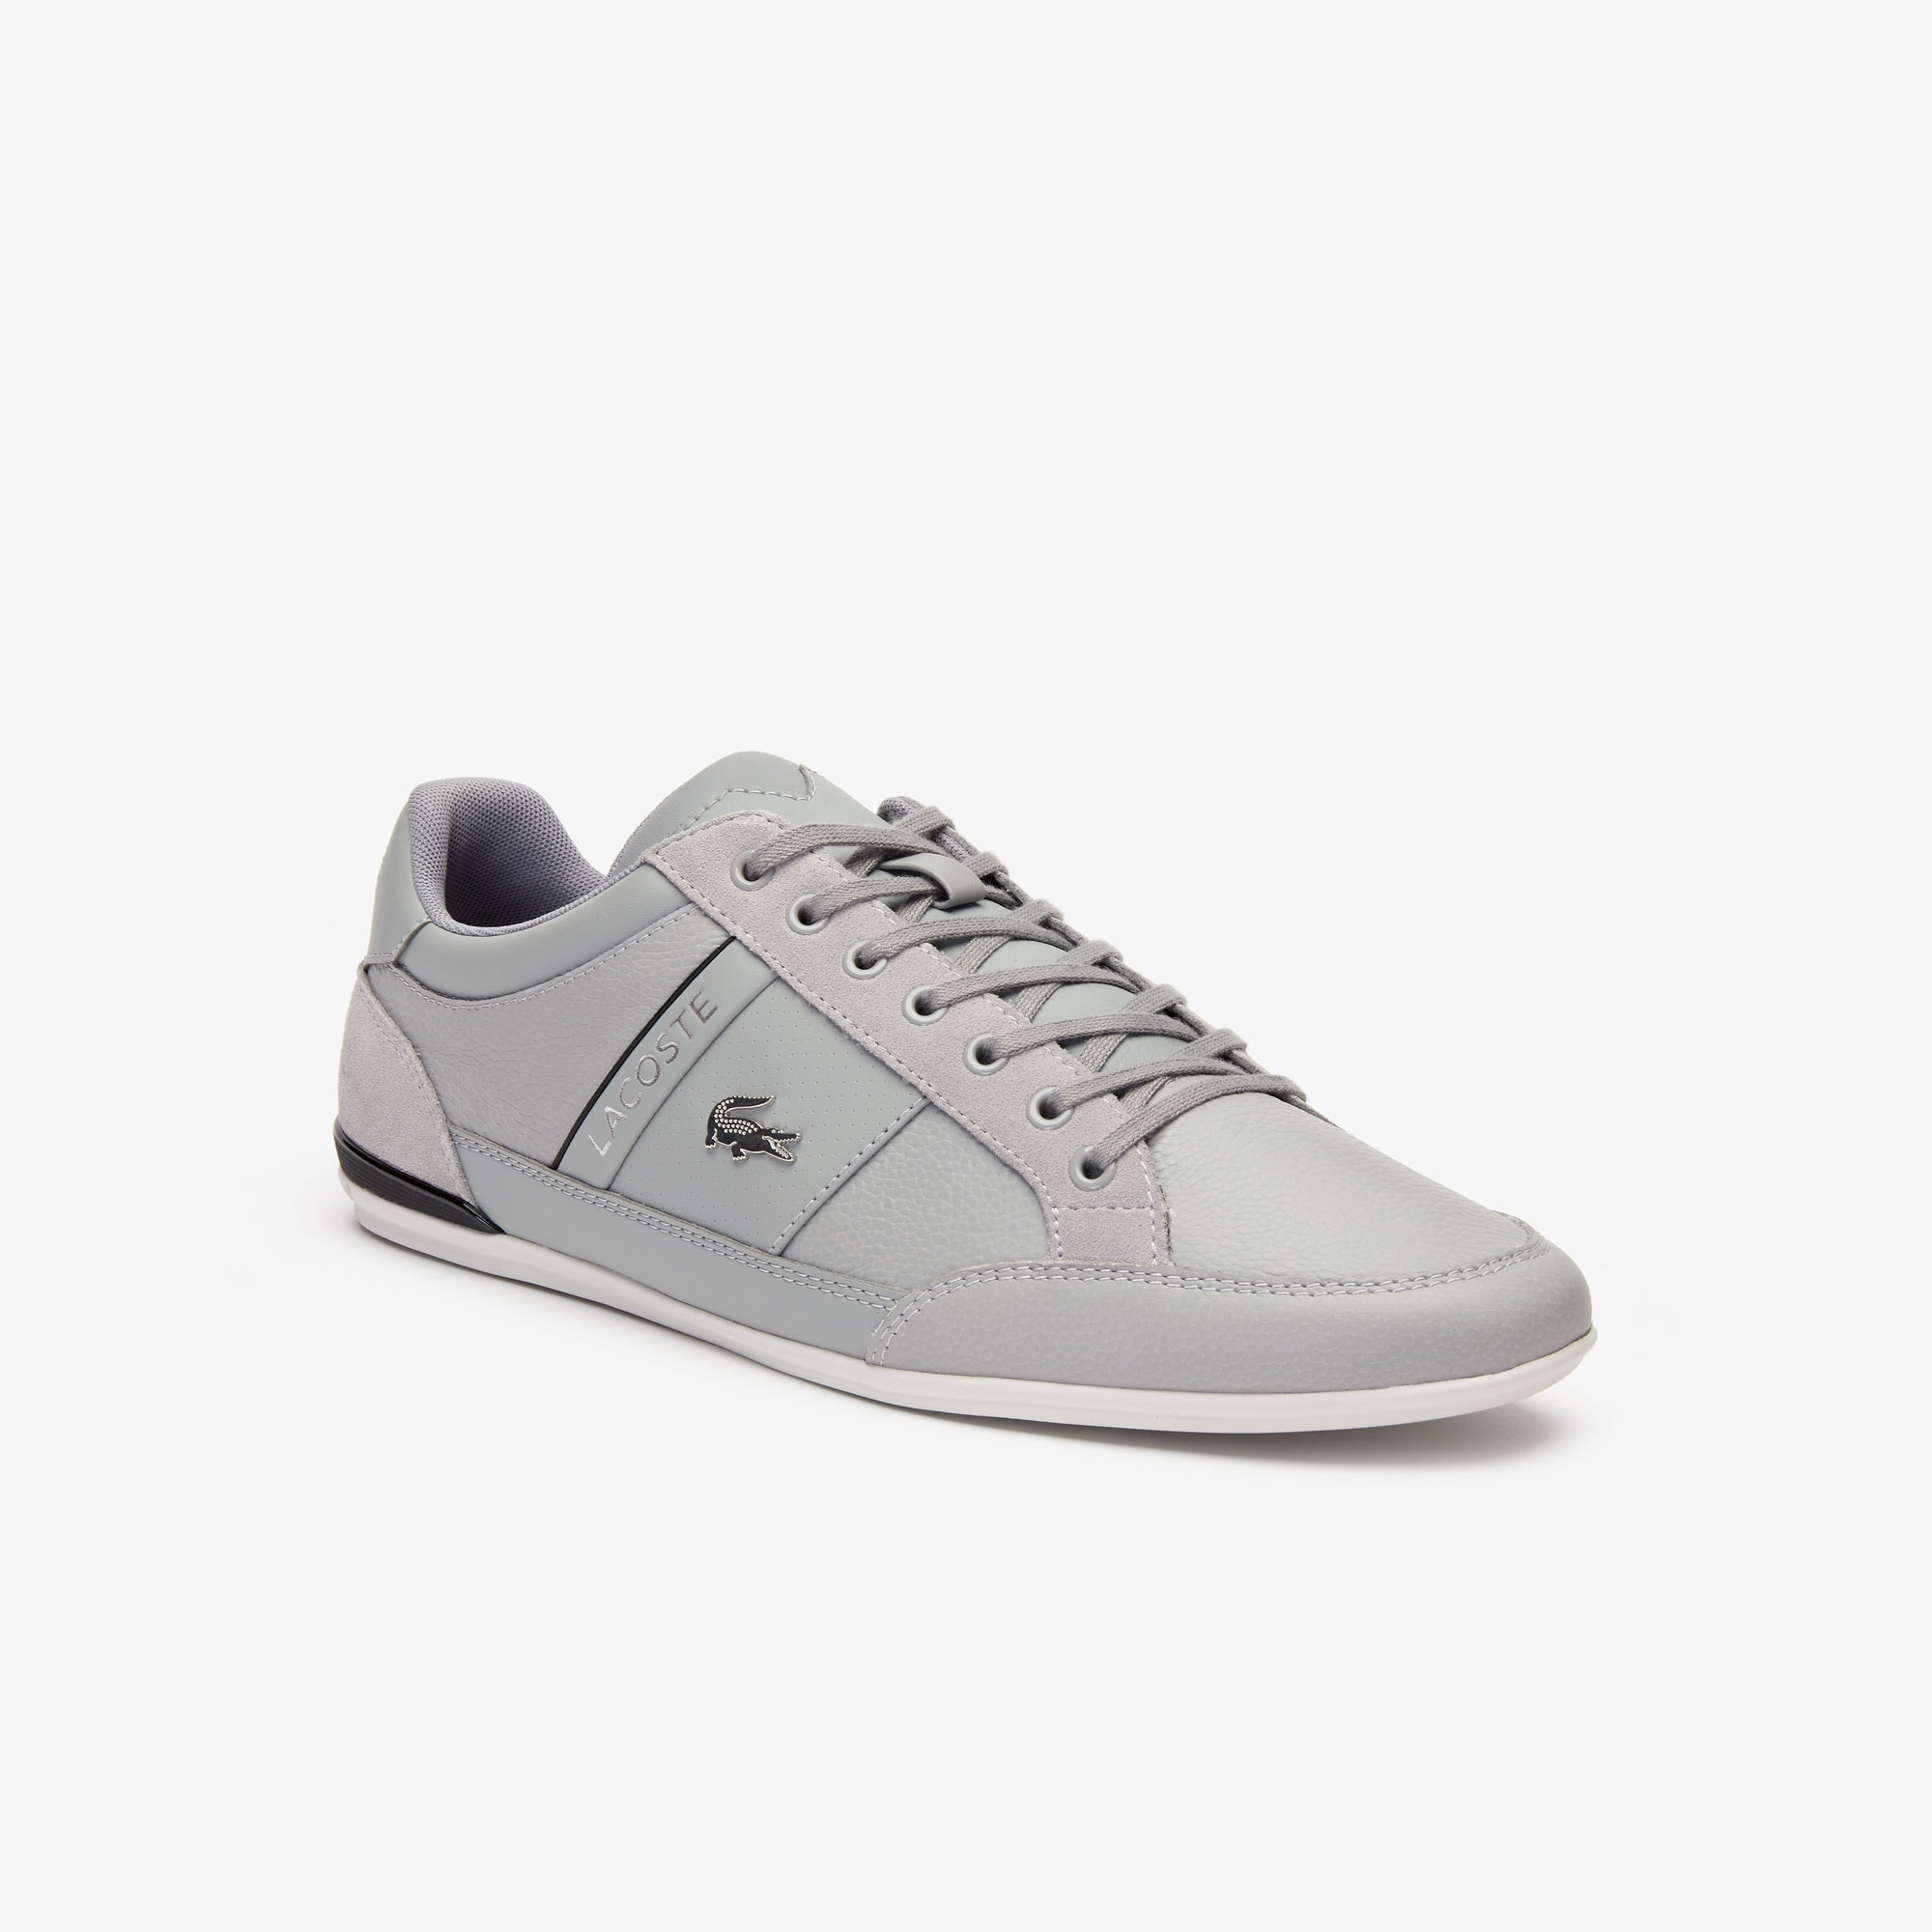 reputable site 4b9f7 becb0 Men's Shoes   Shoes for Men   LACOSTE